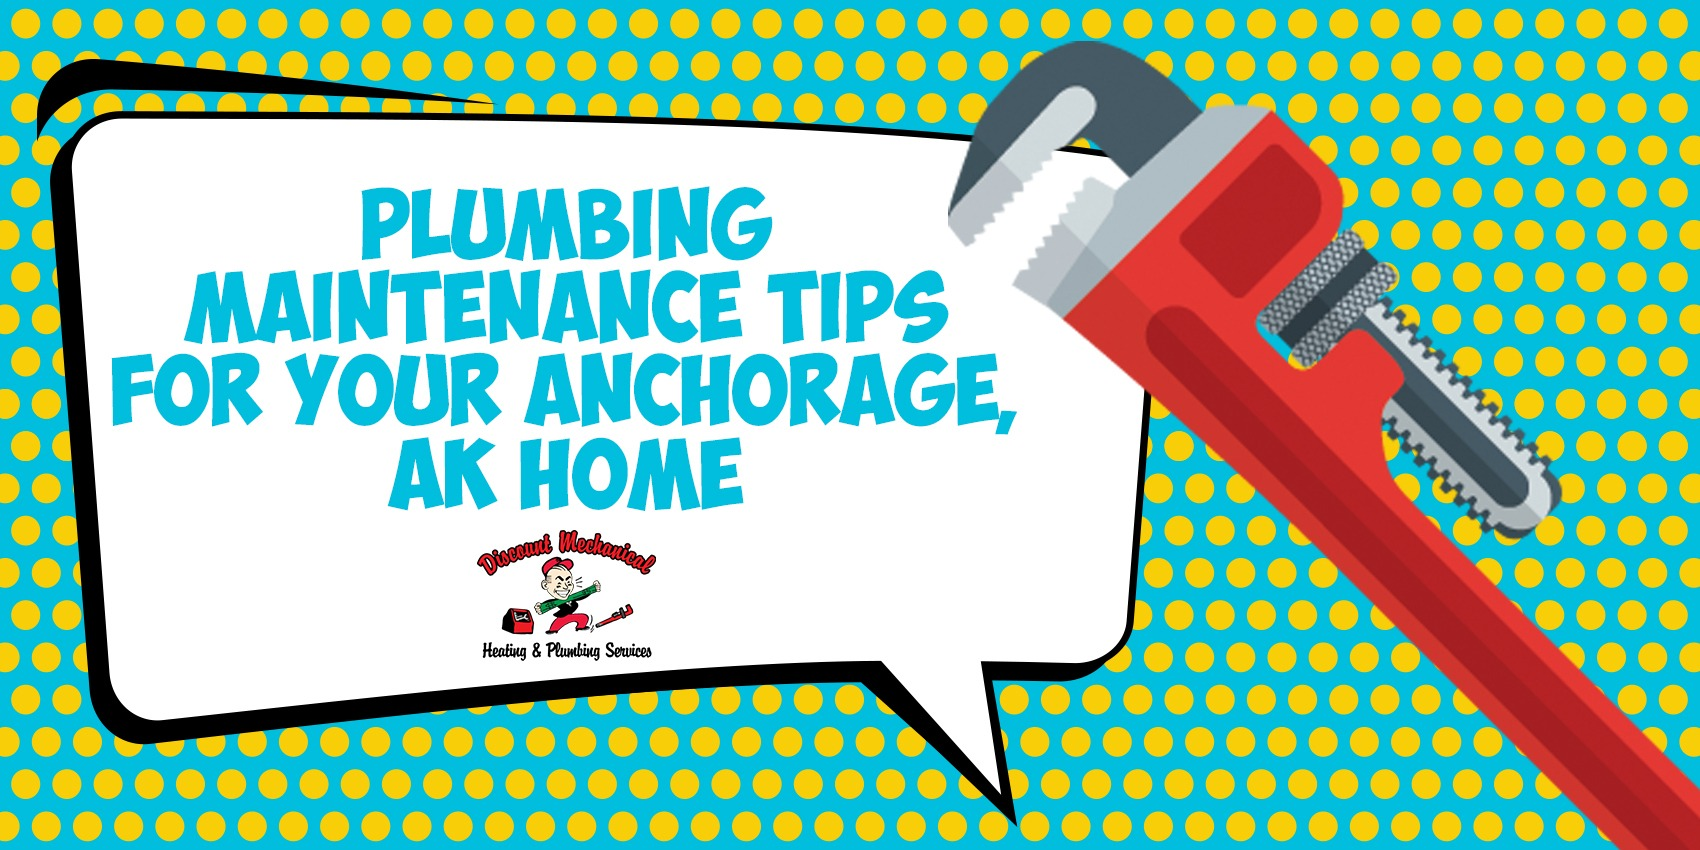 Plumbing Maintenance Tips for Your Anchorage, AK Home